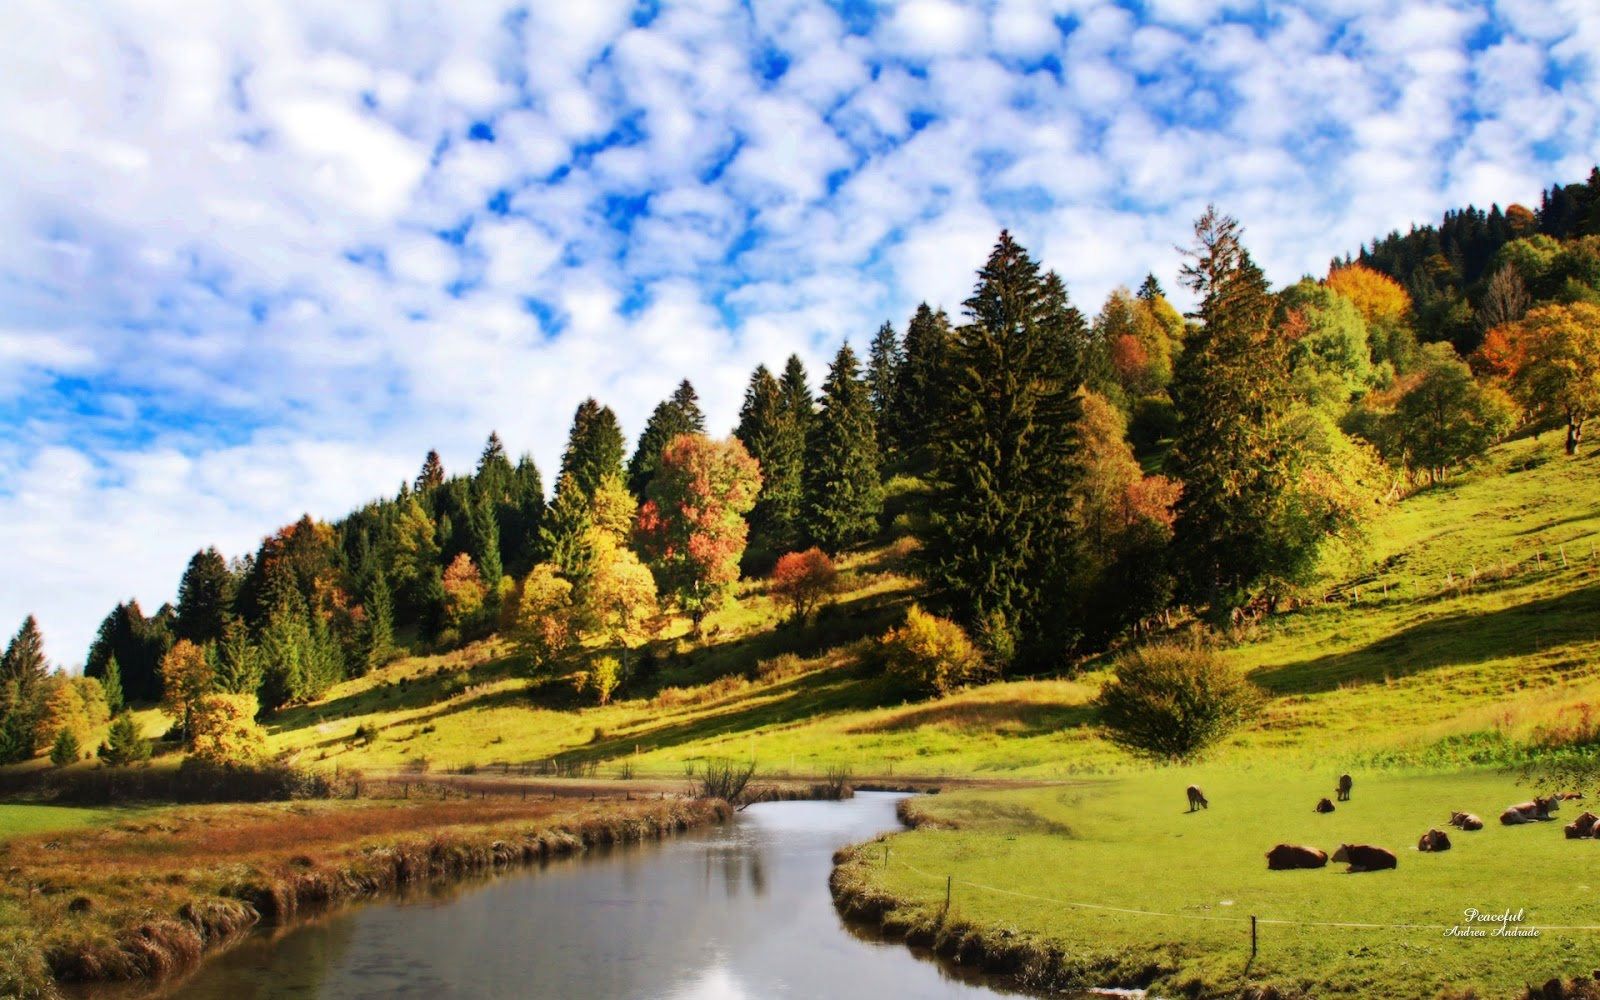 3D HD WALLPAPERS: BEAUTIFUL NATURE HD WALLPAPERS 1080p